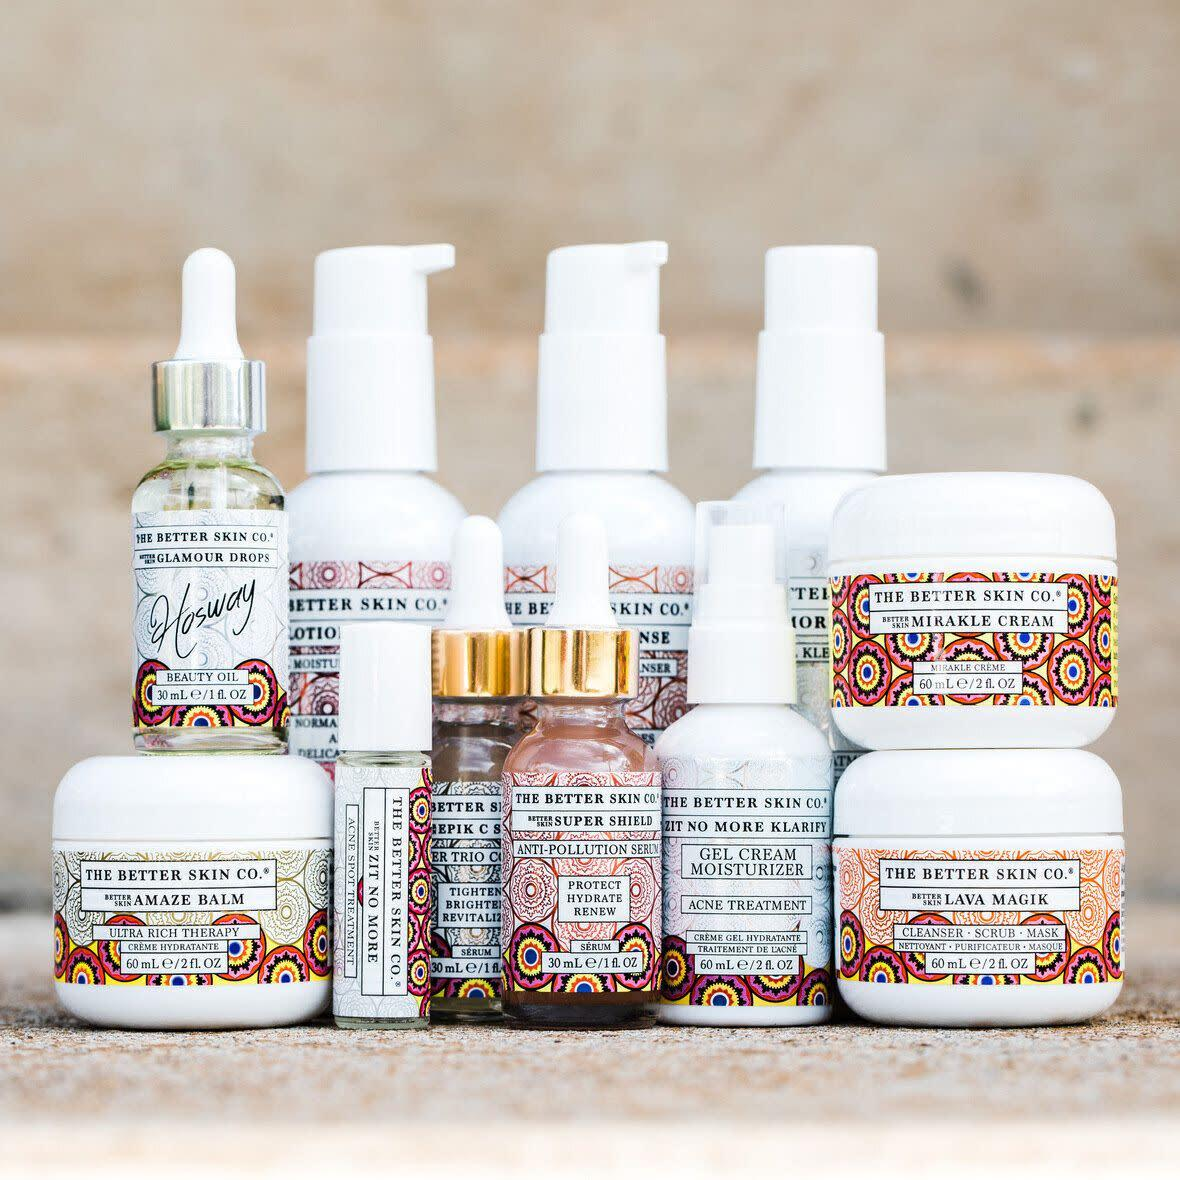 "Get in on this cult-favorite skincare brand comprised of multipurpose products made with clean ingredients to help simplify your routine. <strong><a href=""https://amzn.to/2xTcPUp"" rel=""nofollow noopener"" target=""_blank"" data-ylk=""slk:Check out the sale here"" class=""link rapid-noclick-resp"">Check out the sale here</a></strong>.&nbsp;"